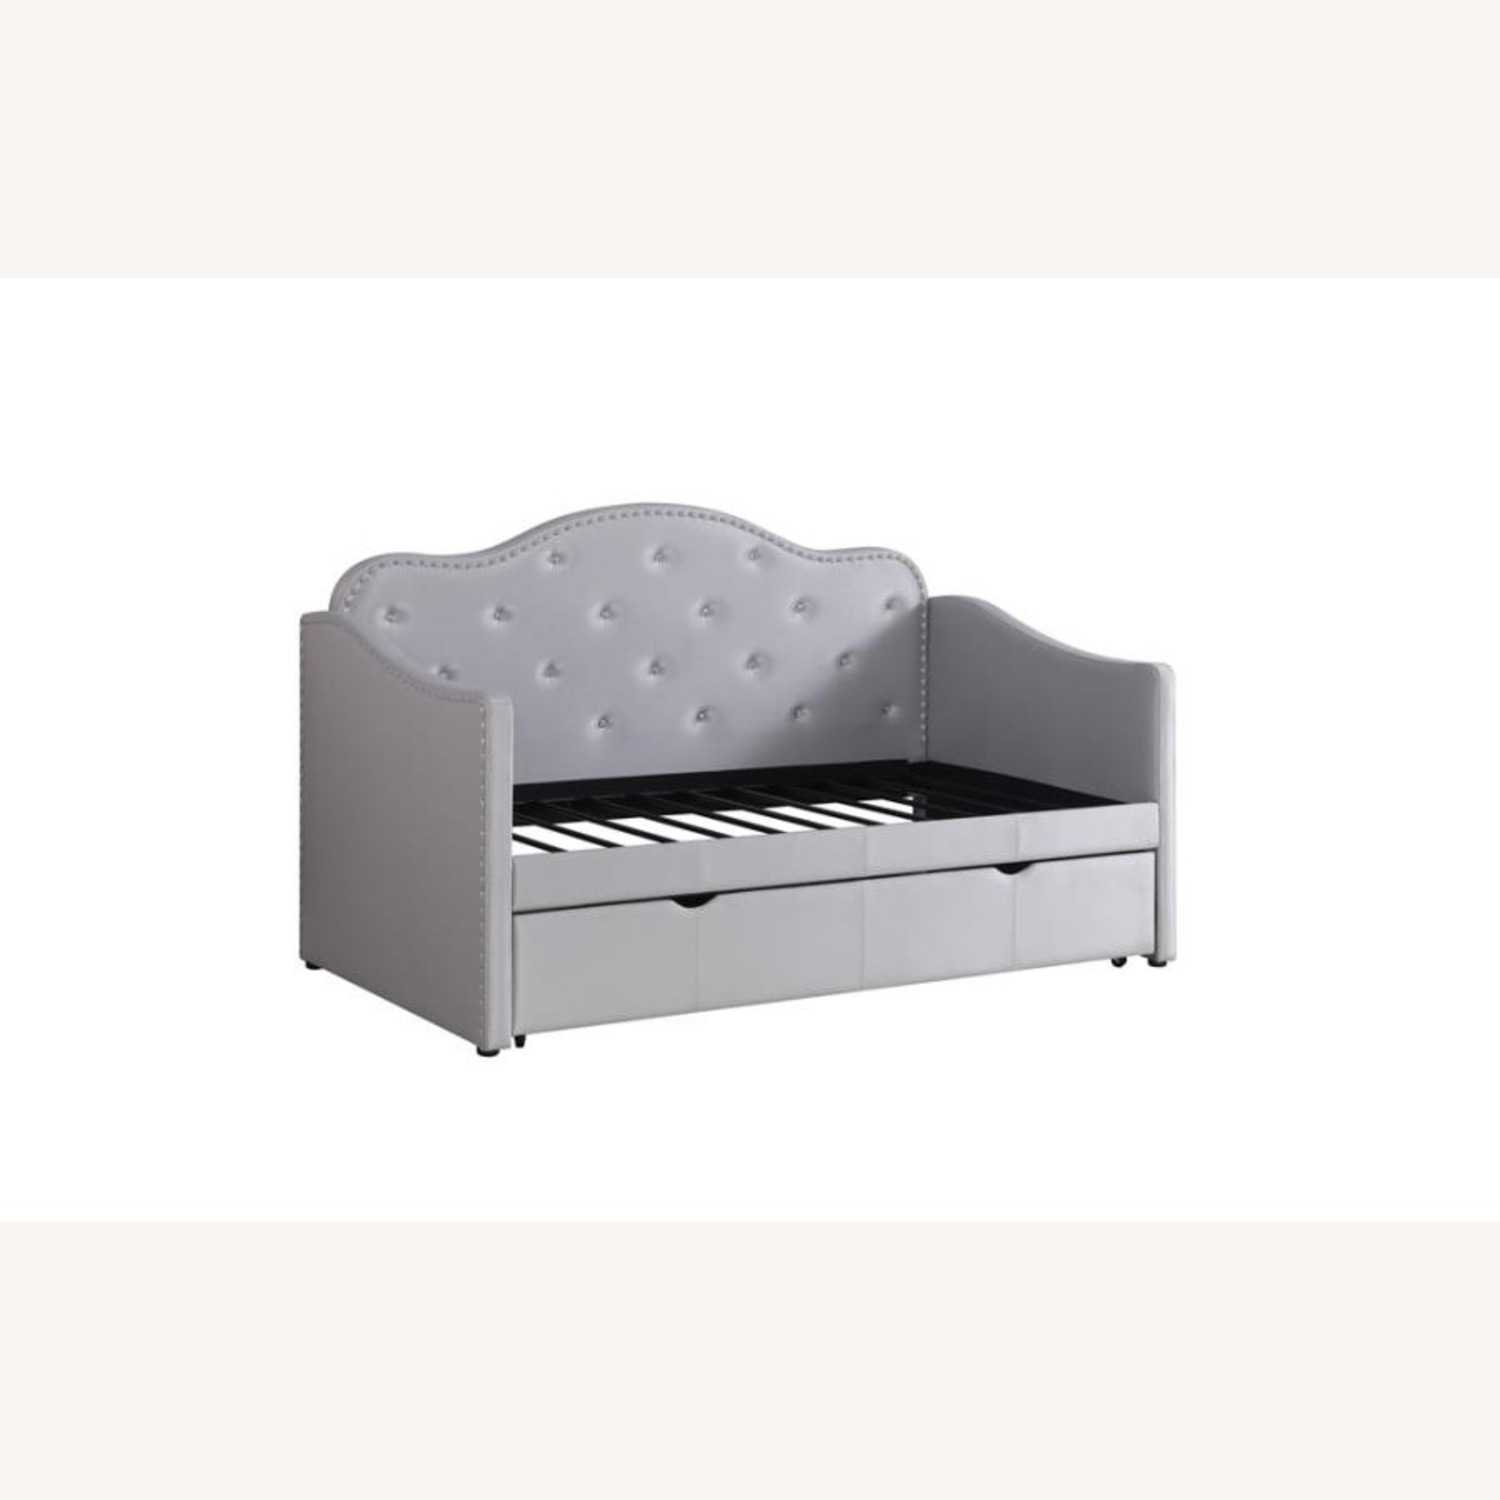 Daybed In Pearlescent Grey Leatherette Finish - image-1